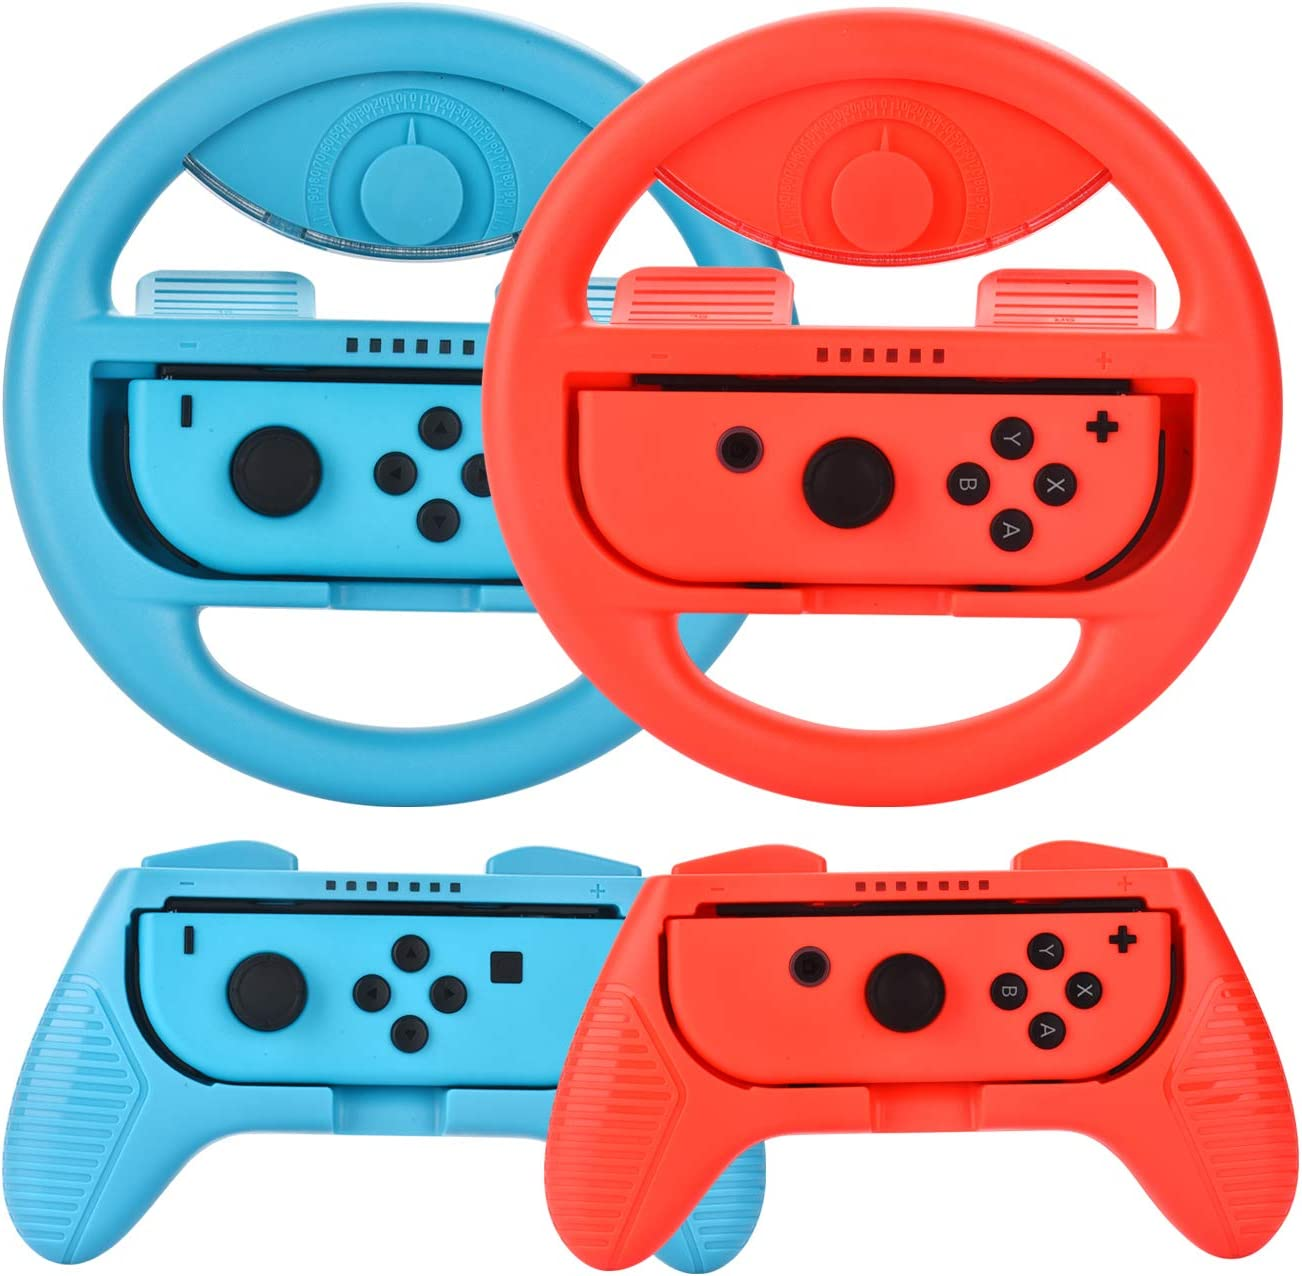 Nintendo Switch and Steering Wheel Controller